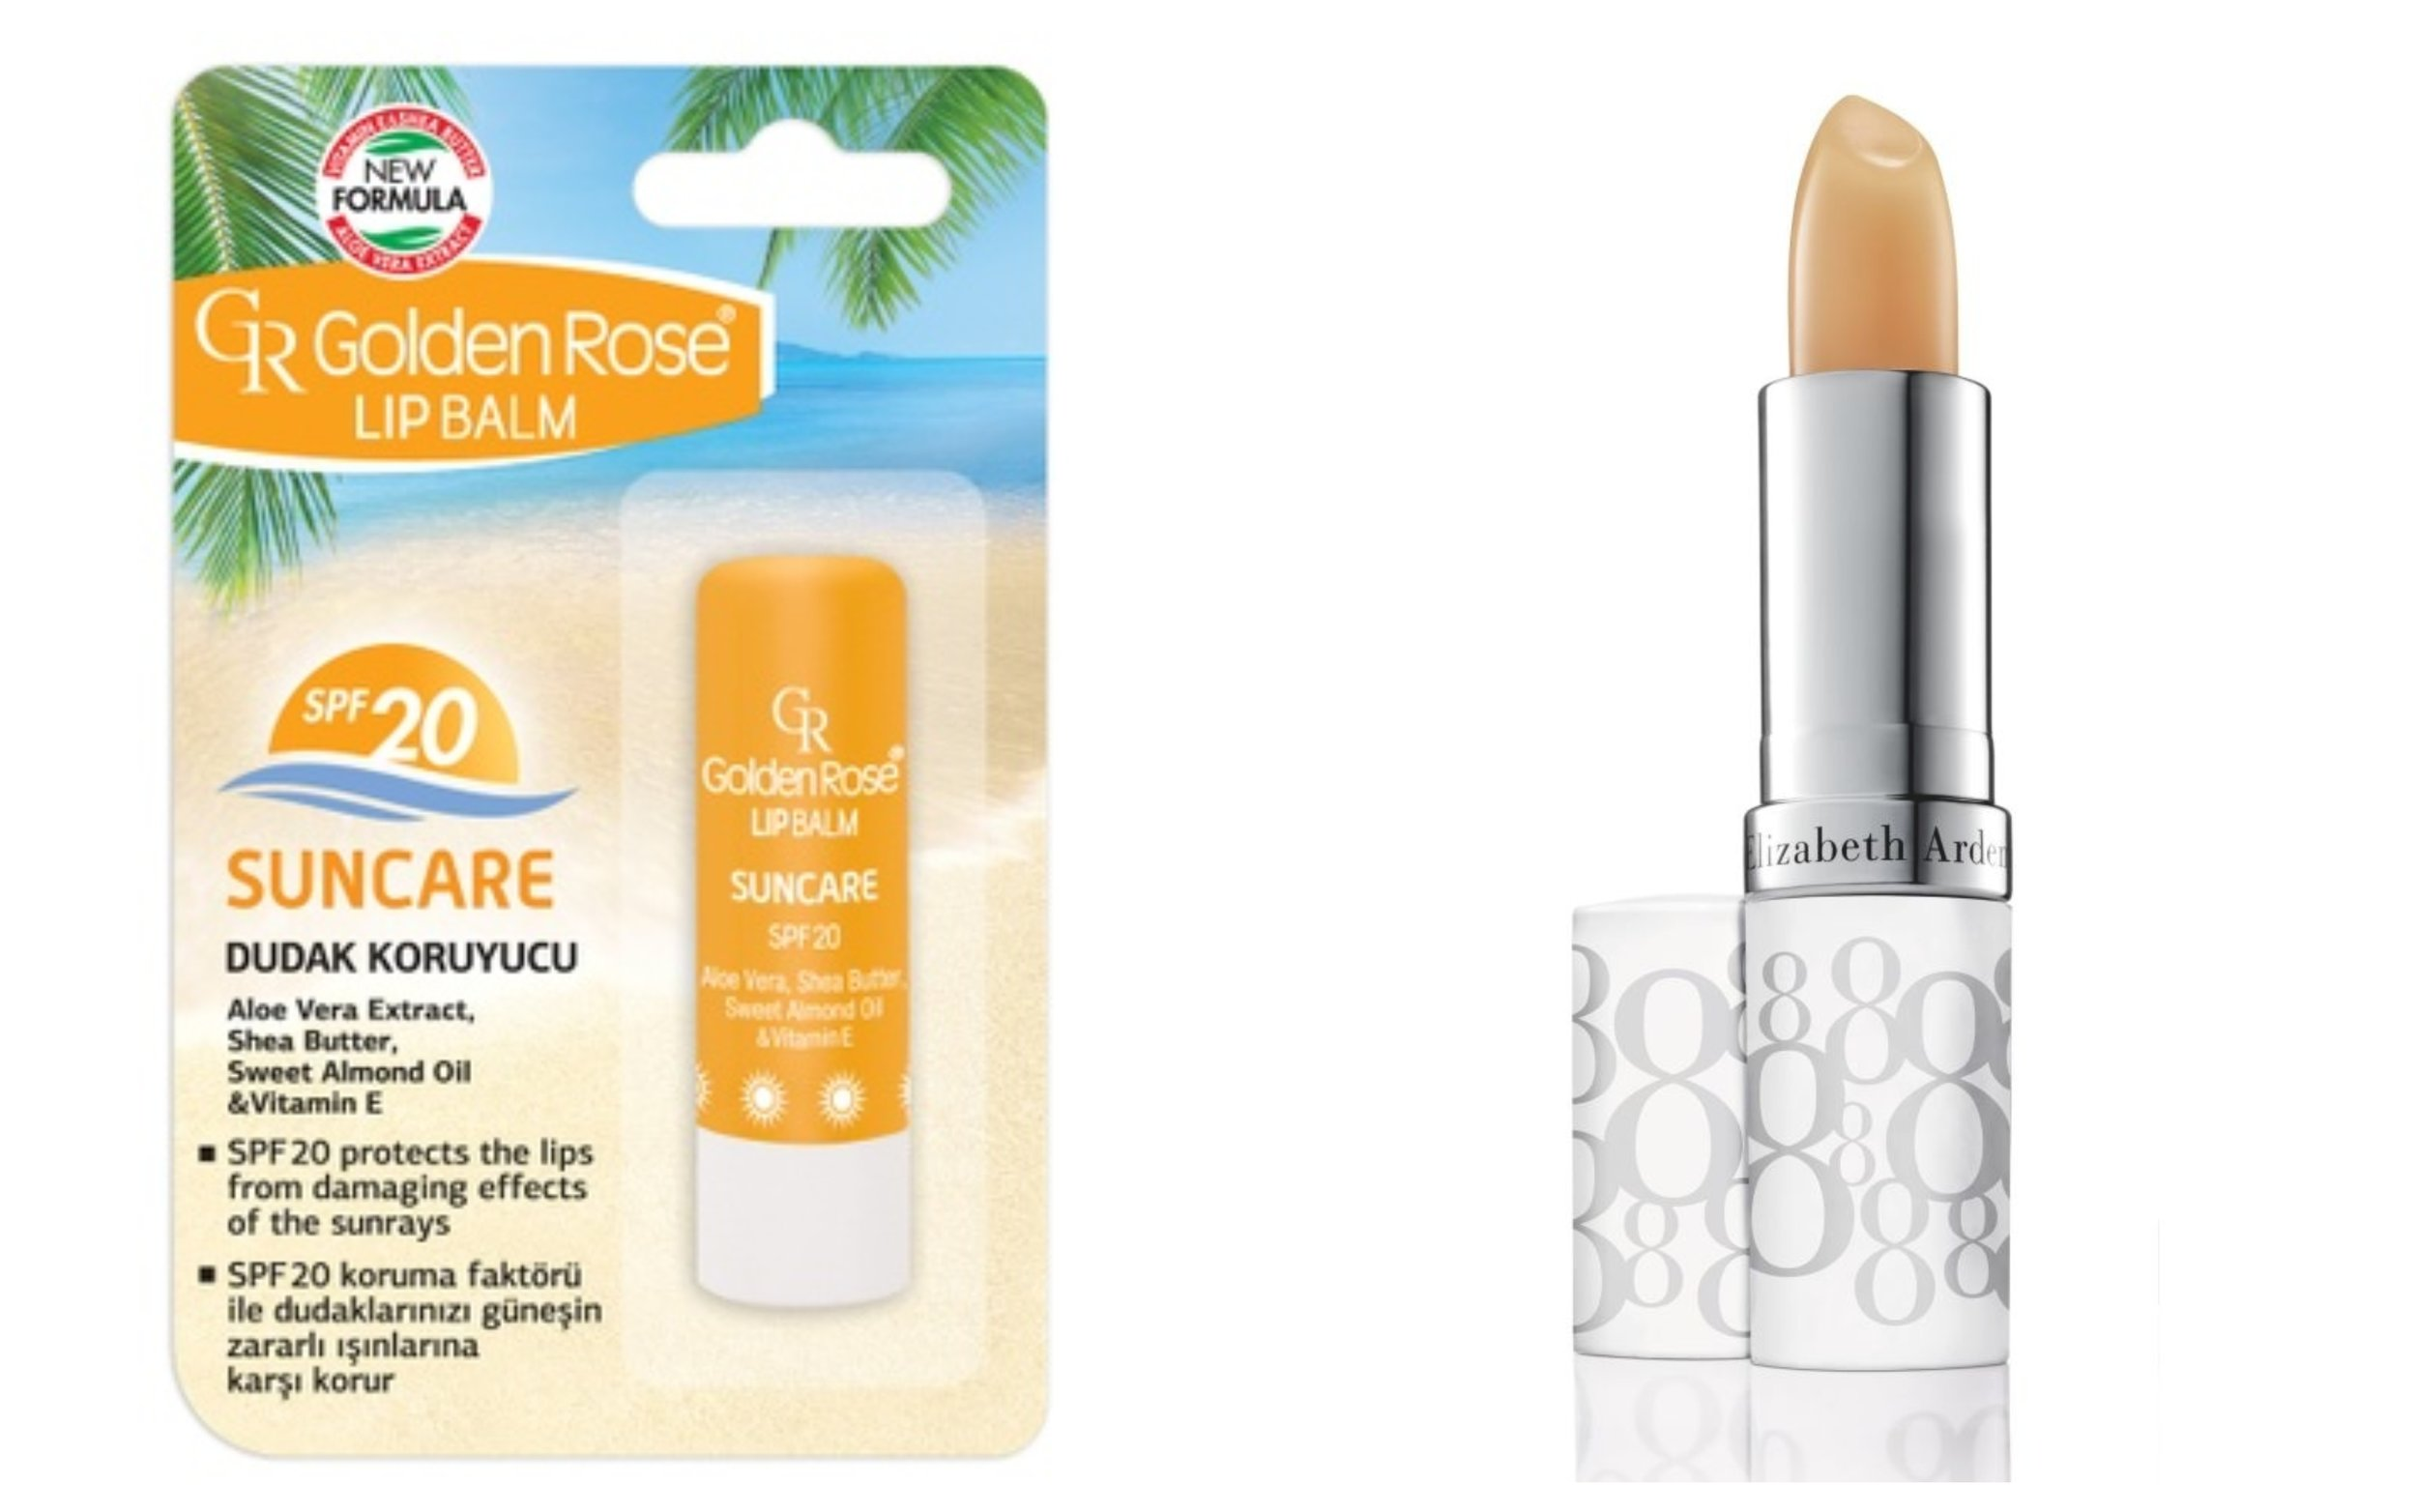 Golden Rose Lip Balm - Suncare SPF 20   ,    Elizabeth Arden Eight Hour Cream Lip Protectant Stick SPF 15